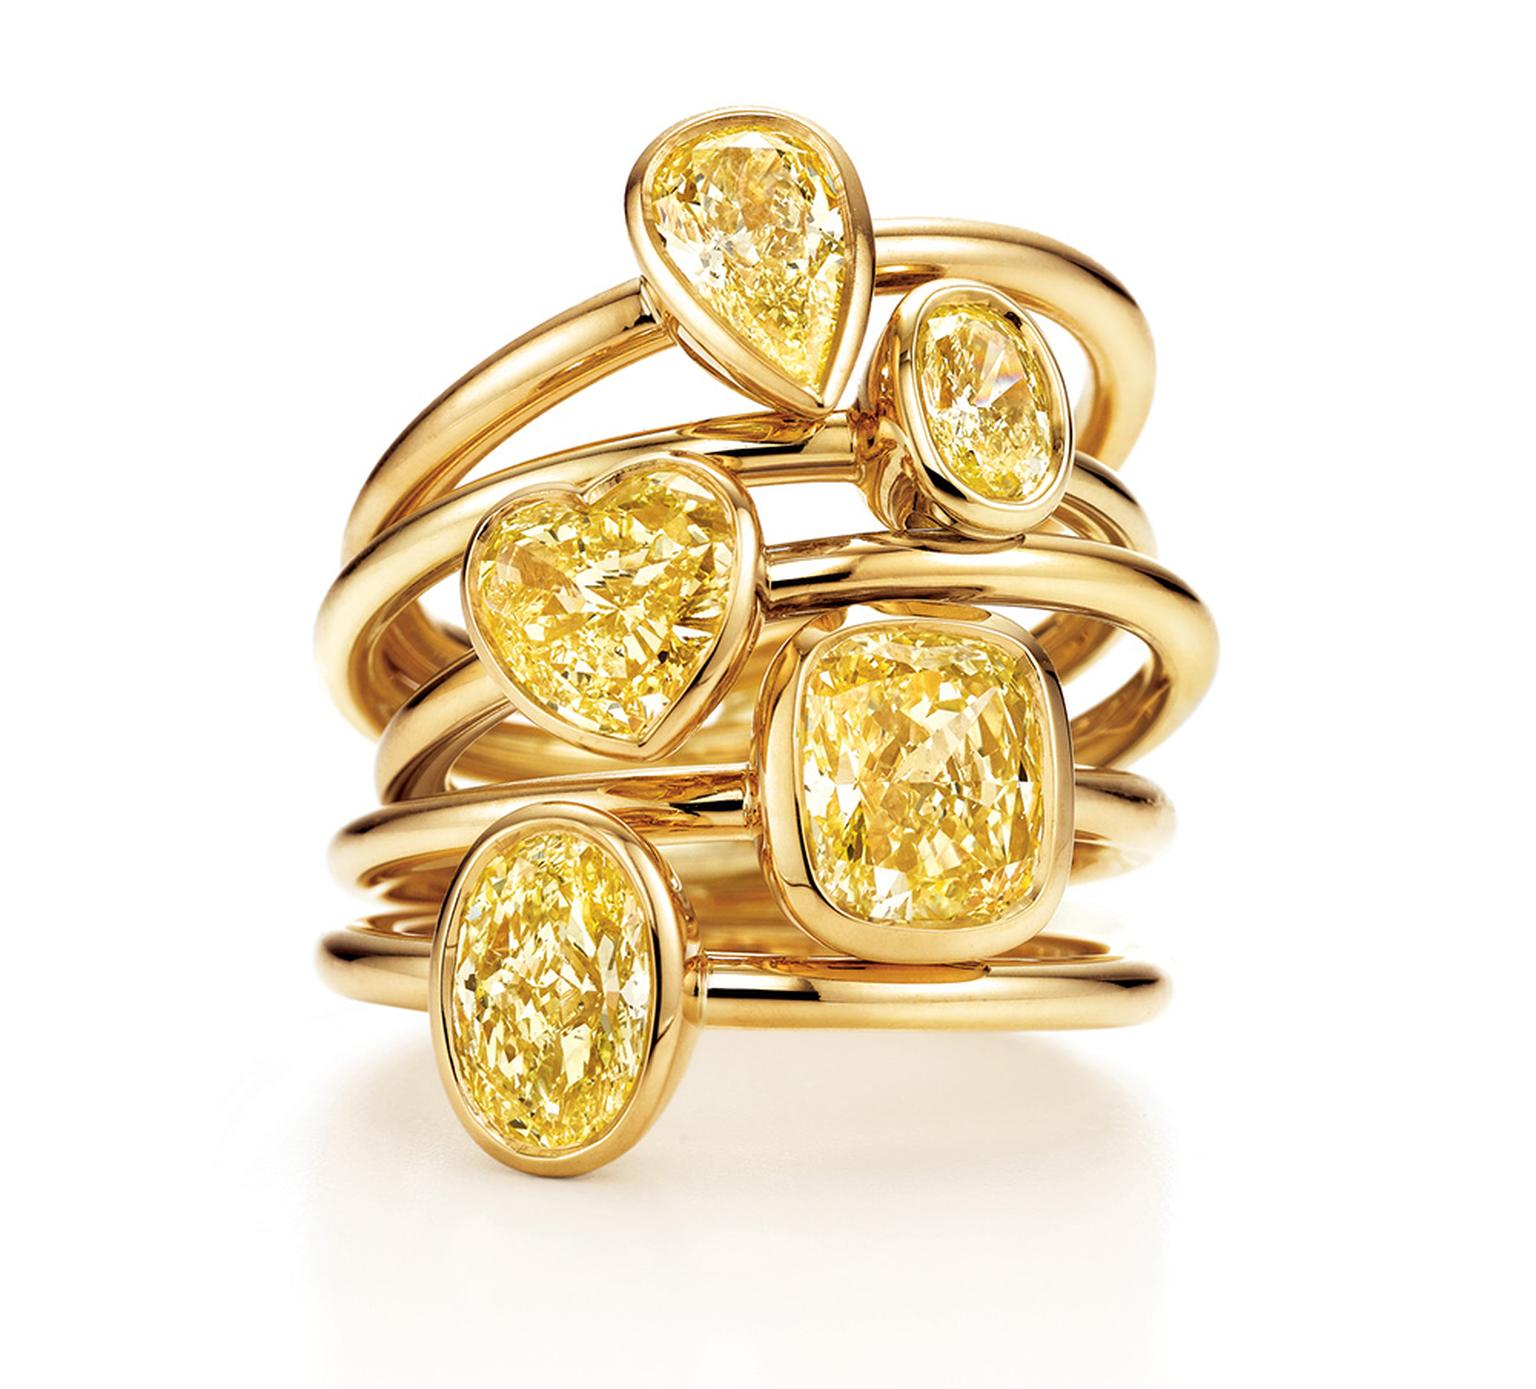 Tiffany & Co solitaire rings in yellow gold, from the Yellow Diamond Collection (from £3,400).